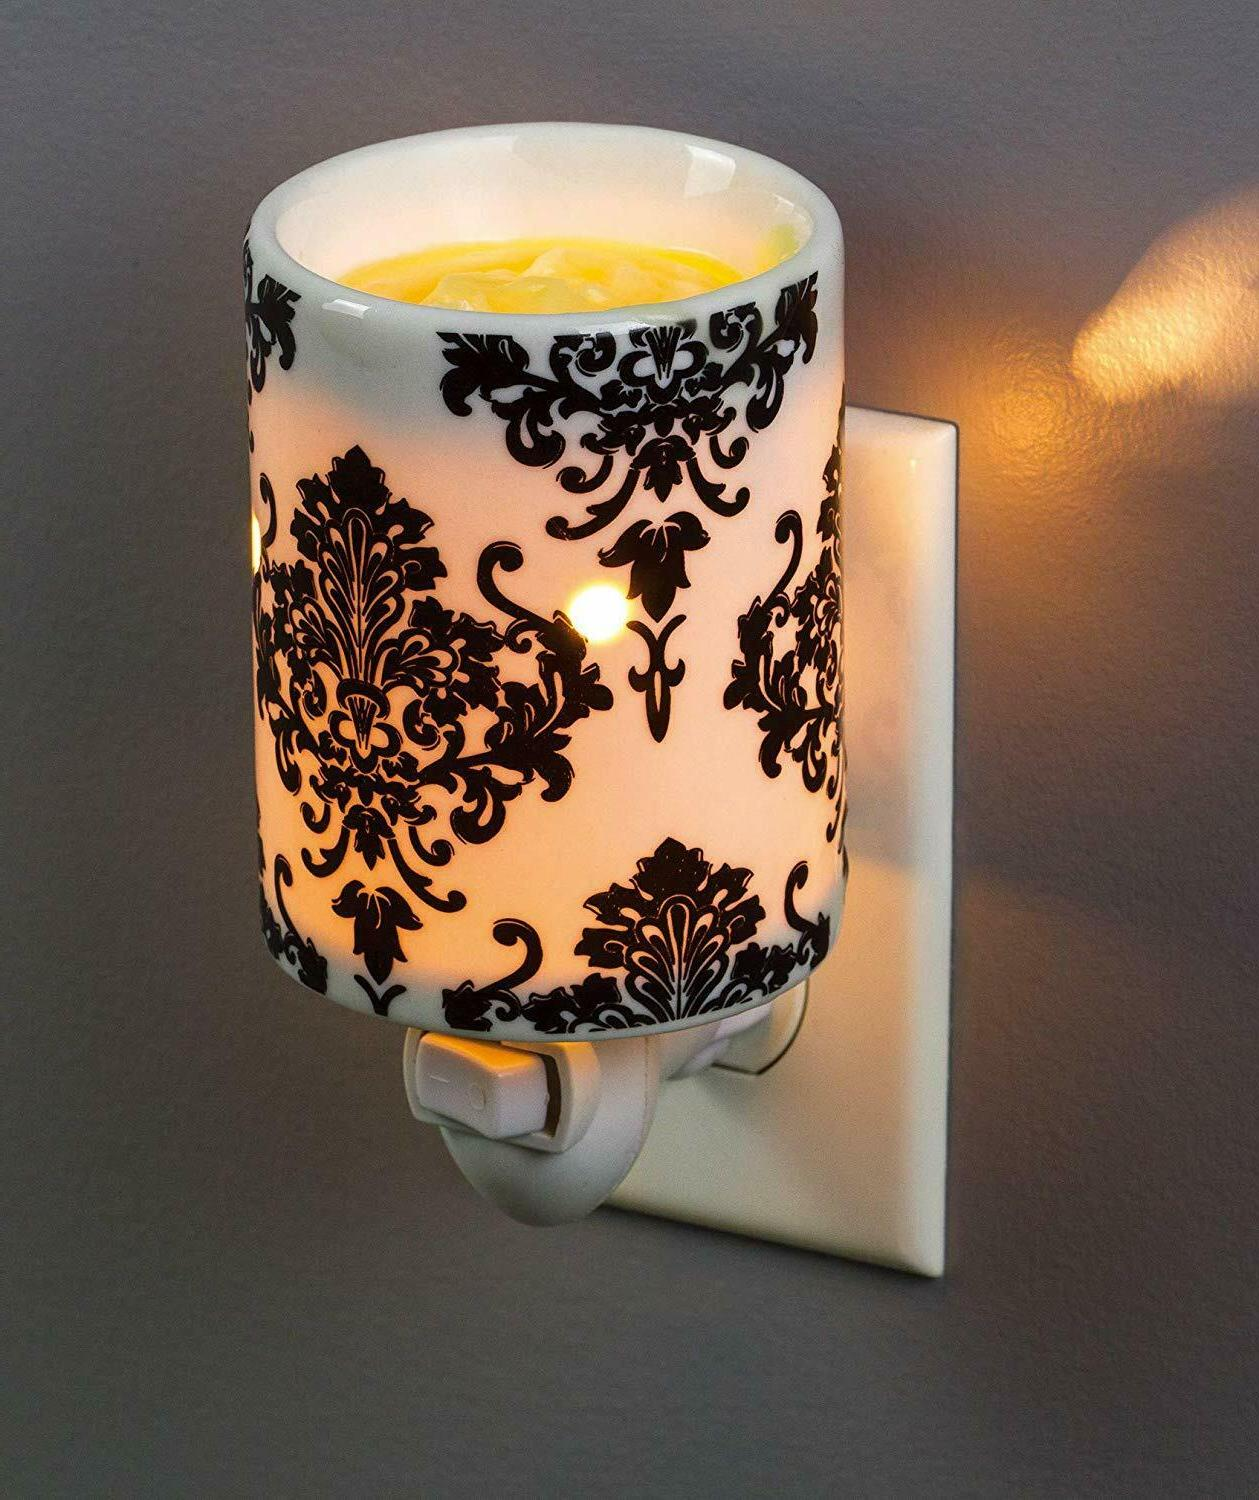 Electric Wax Plug In Scented Heater Scentsy Relax